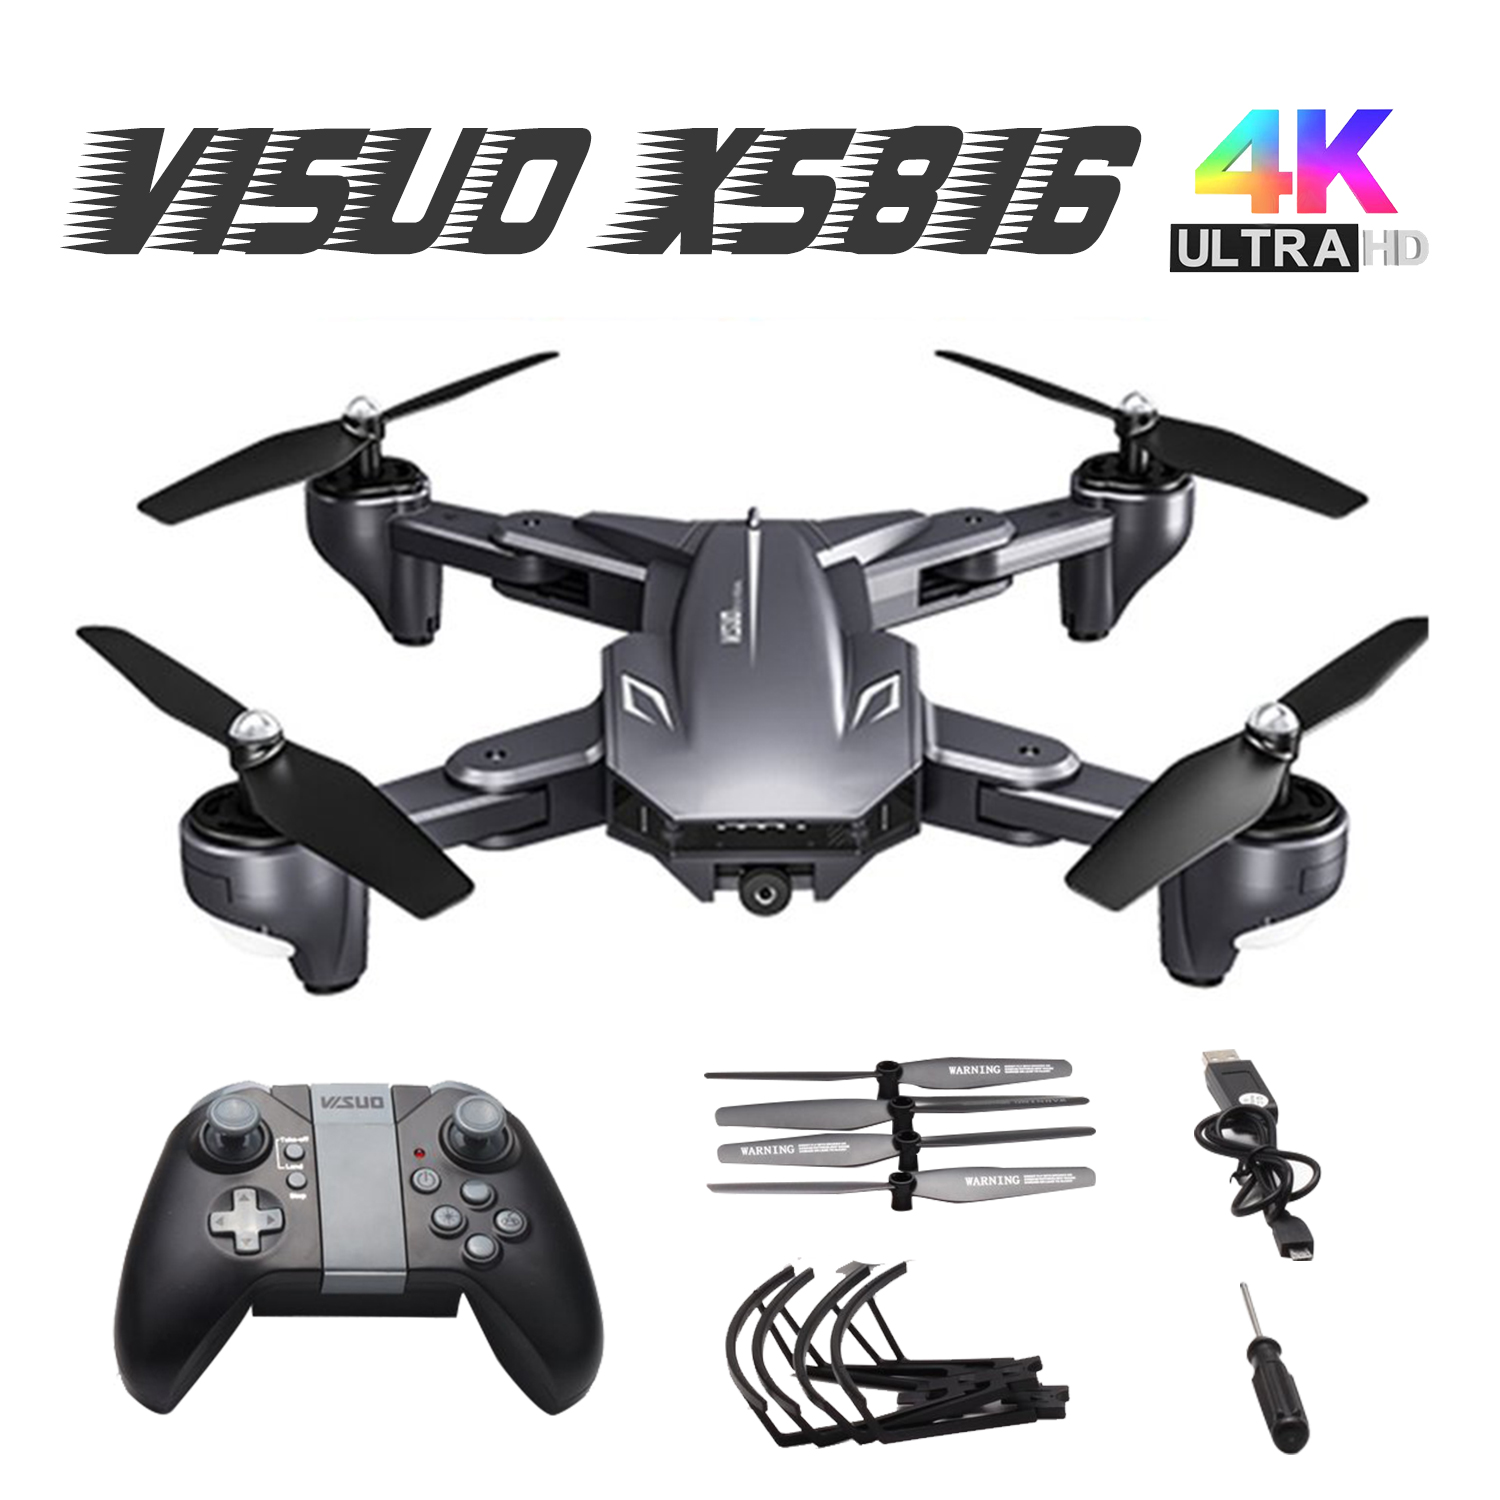 Visuo XS816 RC Drone with 50 Times Zoom WiFi FPV 4K  720P Dual Camera Optical Flow Quadcopter Foldable Selfie Dron VS SG106 M70